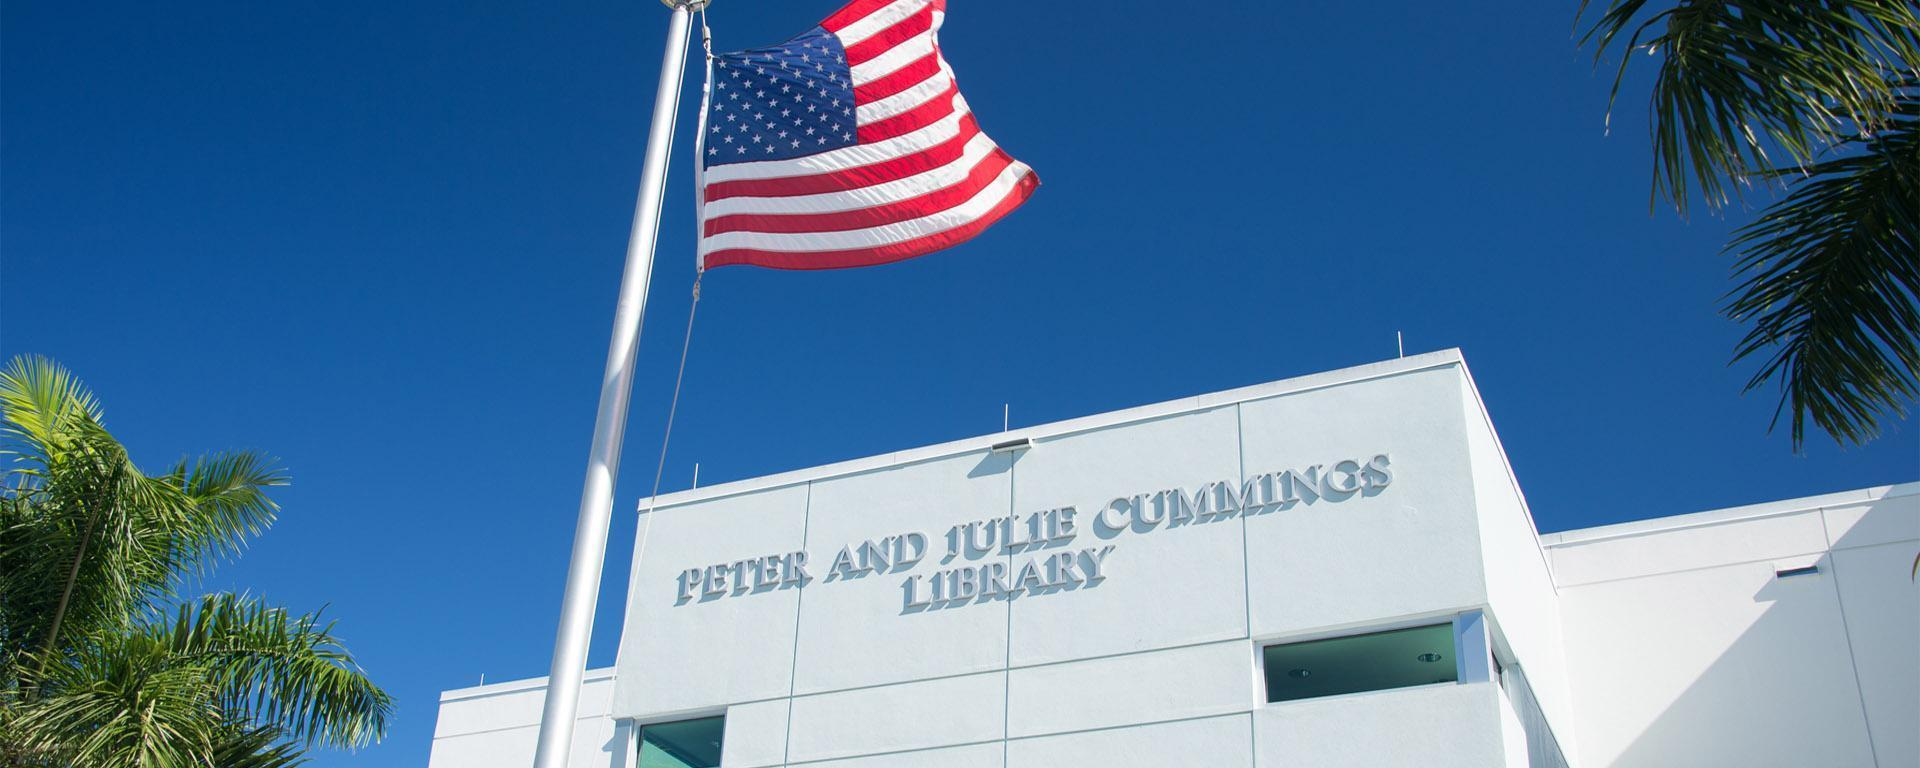 Image of the exterior of the Peter and Julie Cummings Library